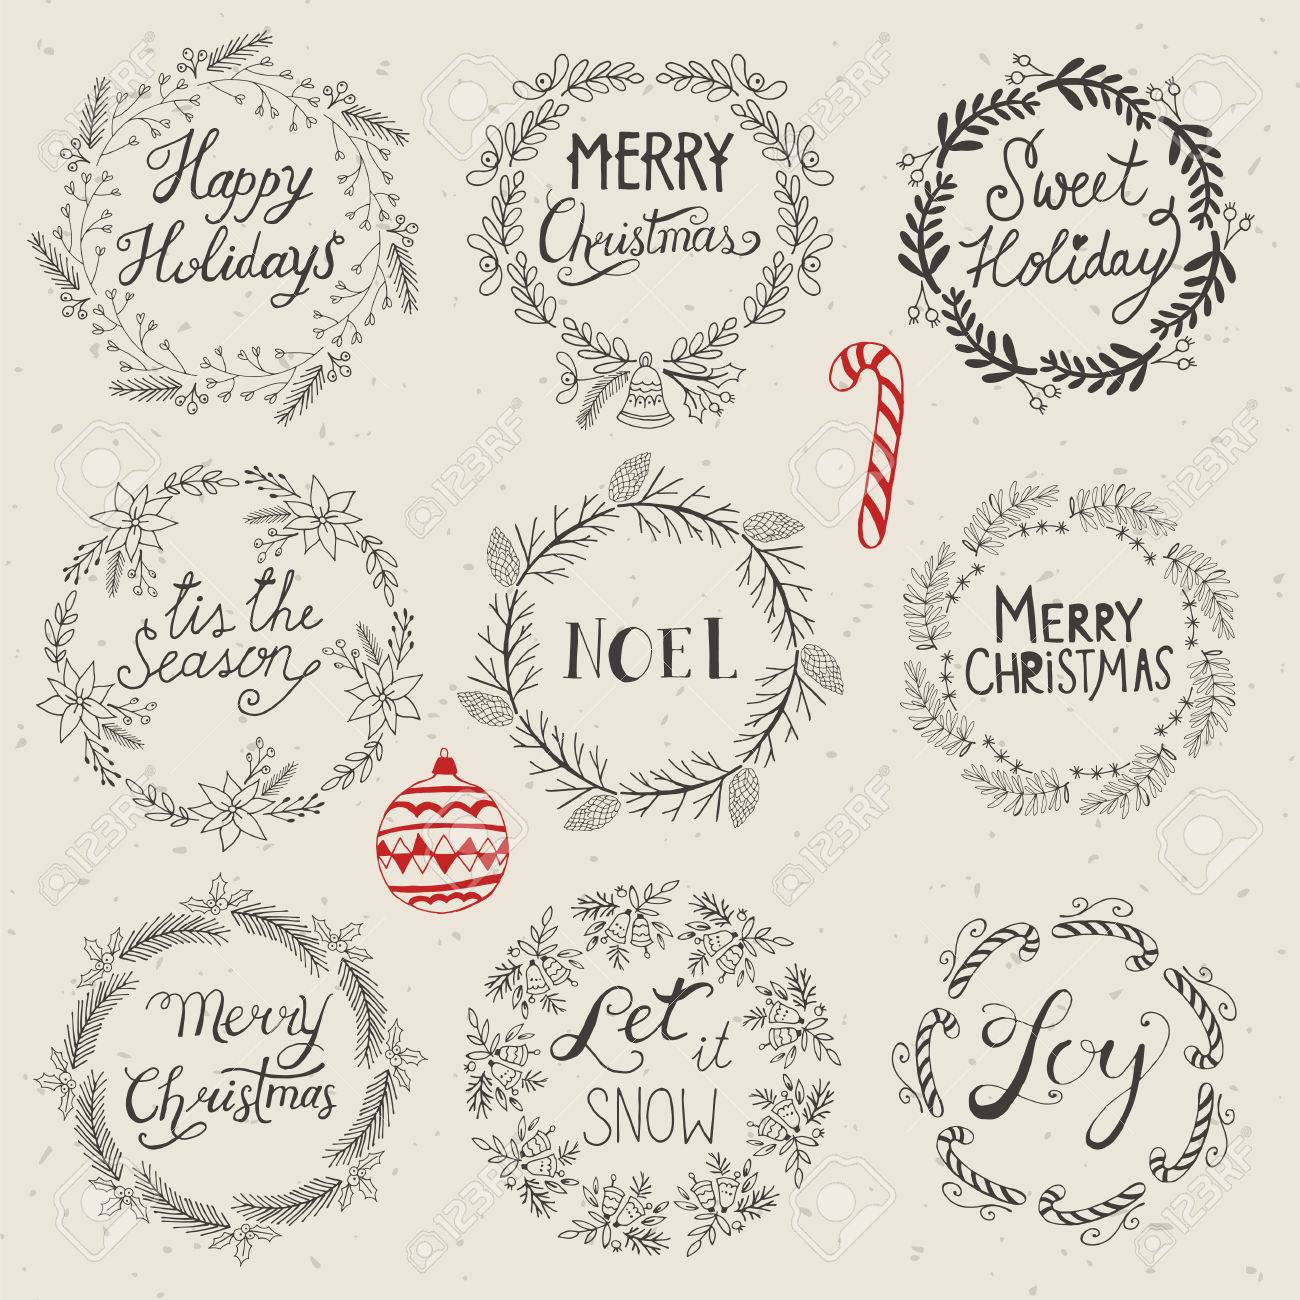 Christmas Wreath Set For Design Hand Drawing Vector Illustration Royalty Free Cliparts Vectors And Stock Illustration Image 64198017